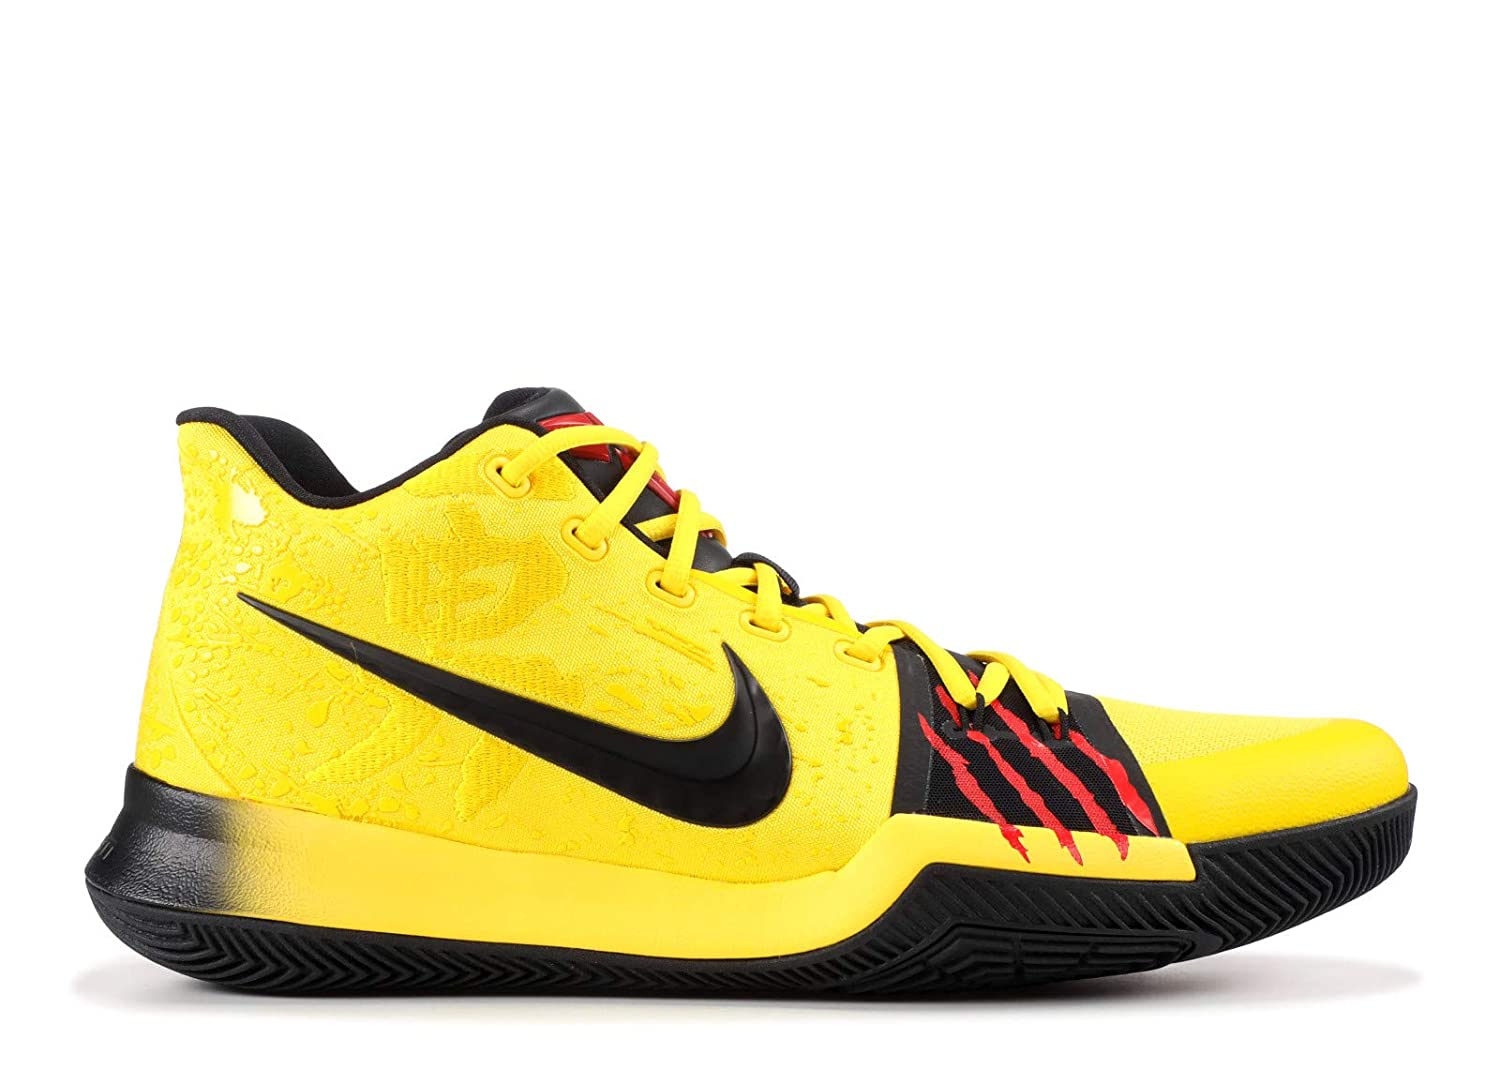 0c5c441869a Nike Kyrie 3  Bruce Lee  - AJ1672-700 -  Amazon.co.uk  Shoes   Bags